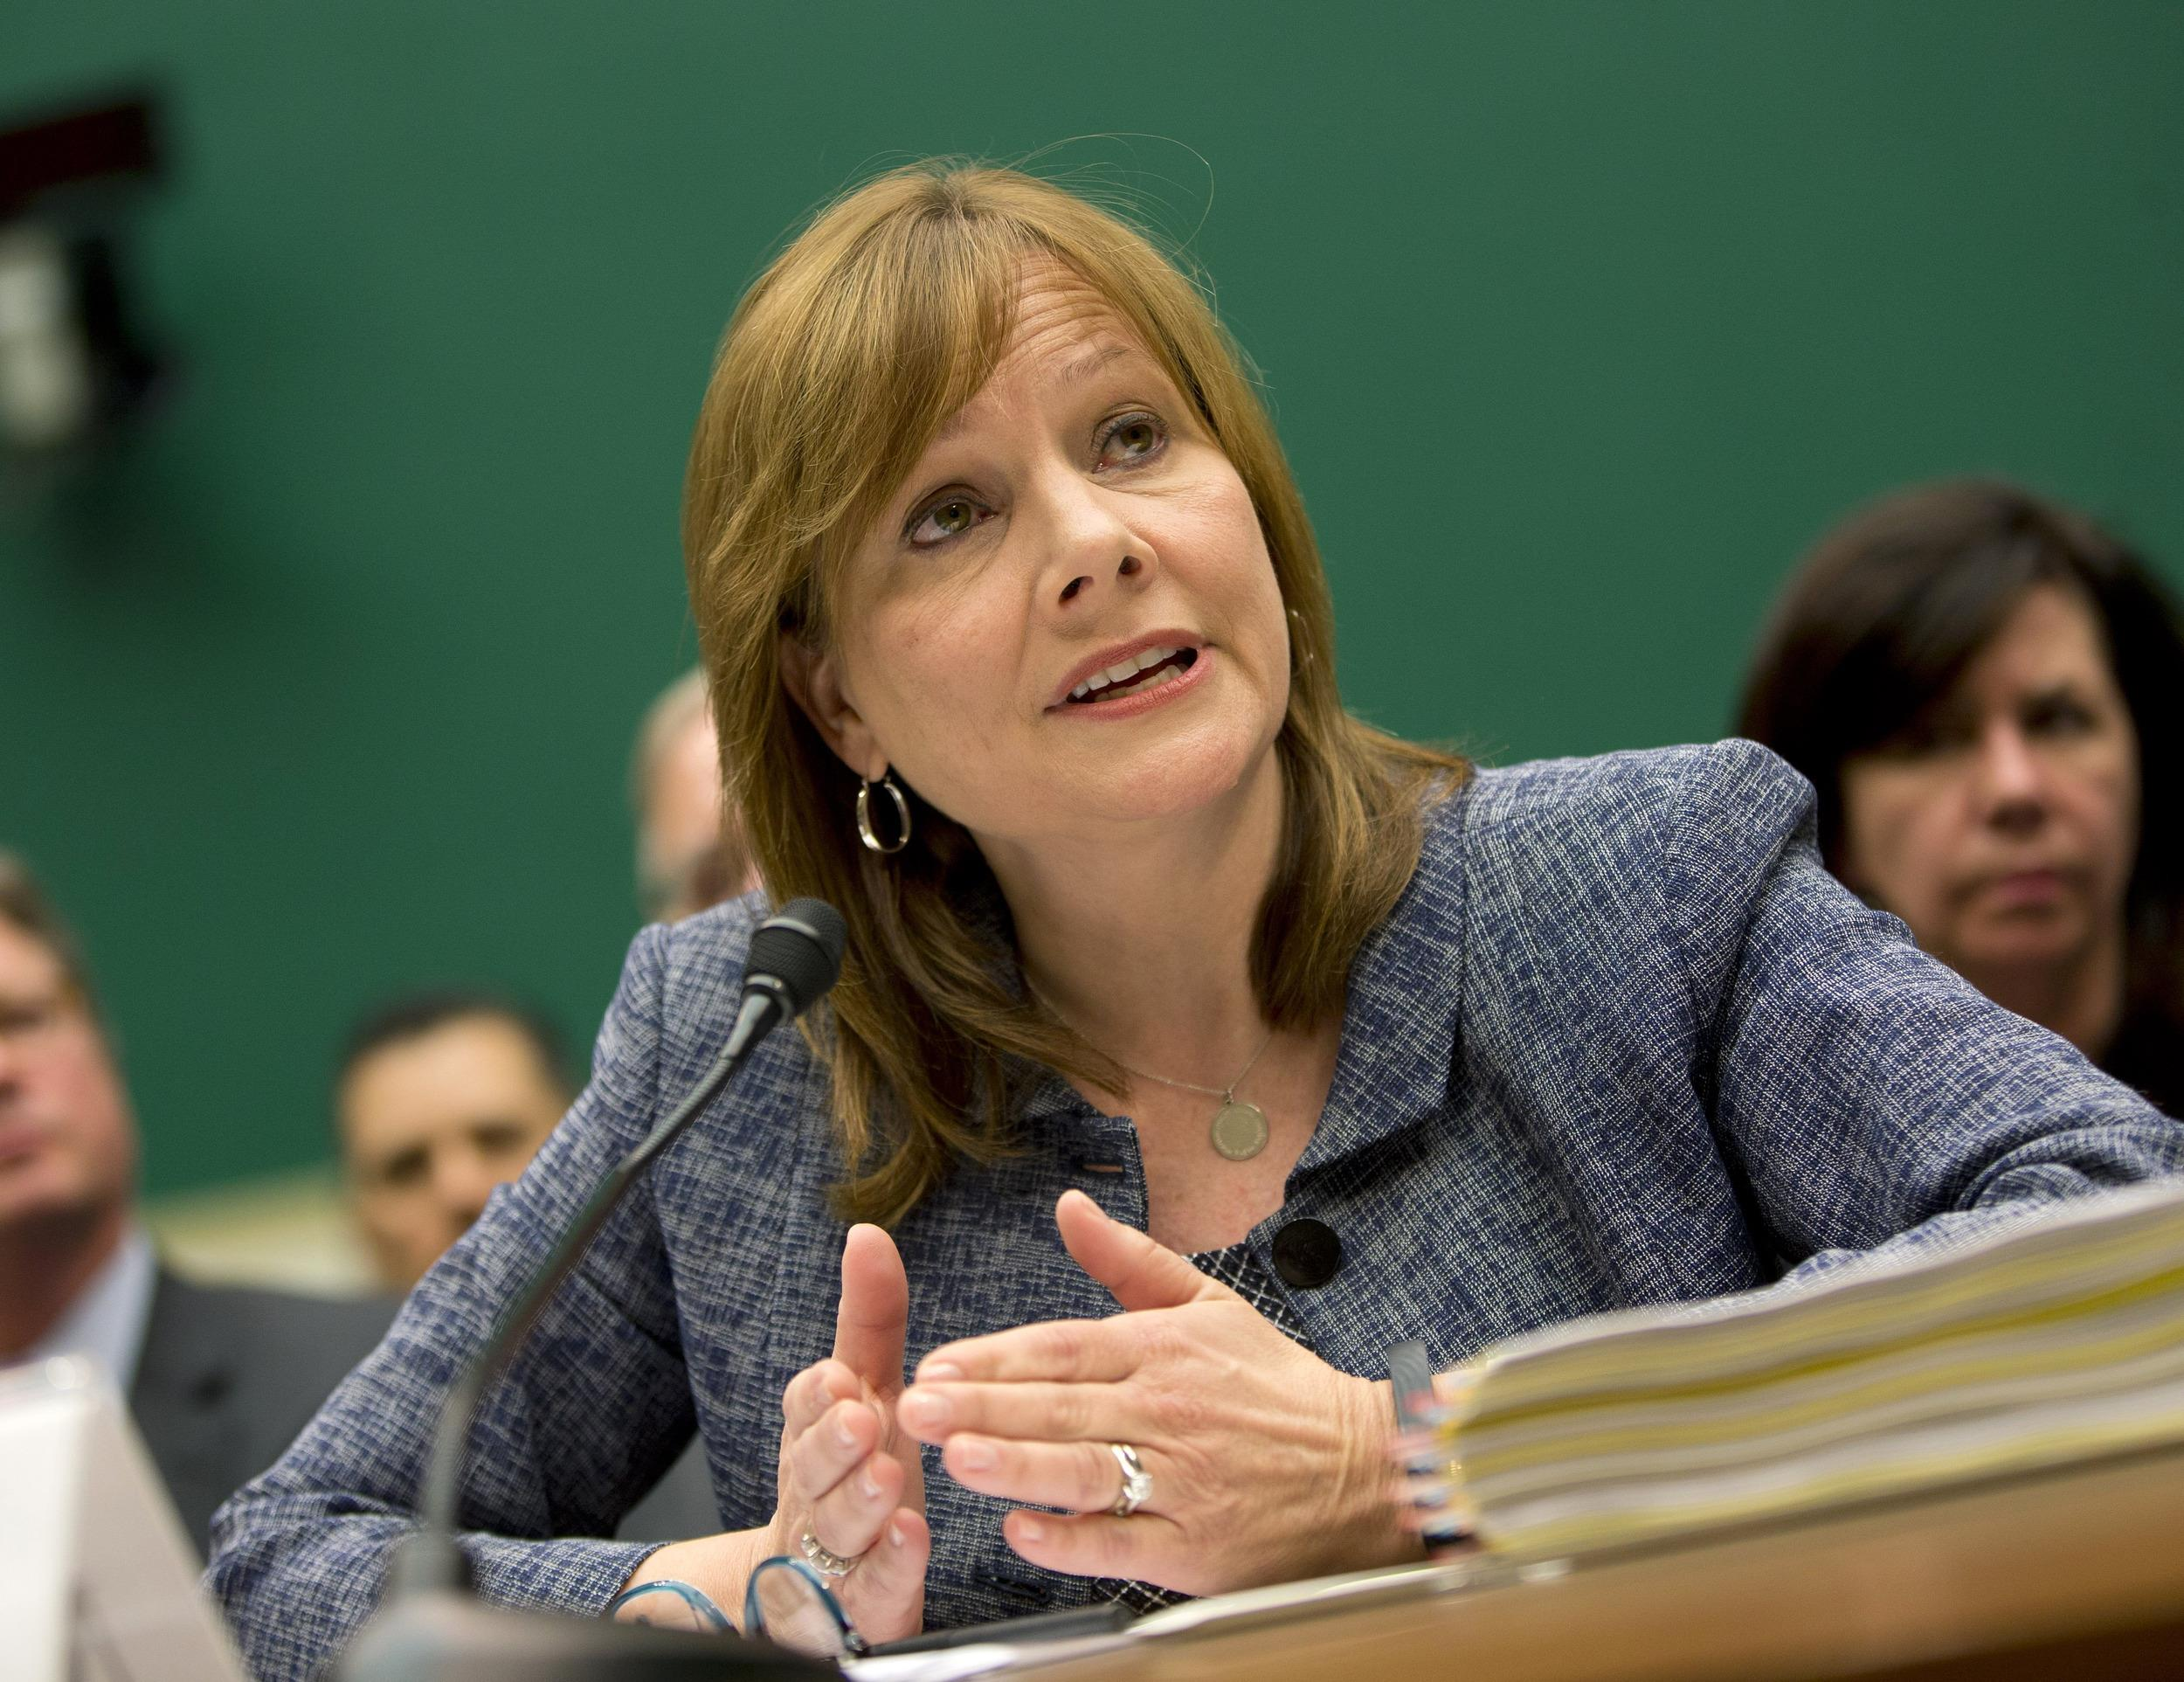 GM CEO Mary Barra answers questions in Congress on Tuesday about the recall of millions of her company's cars.